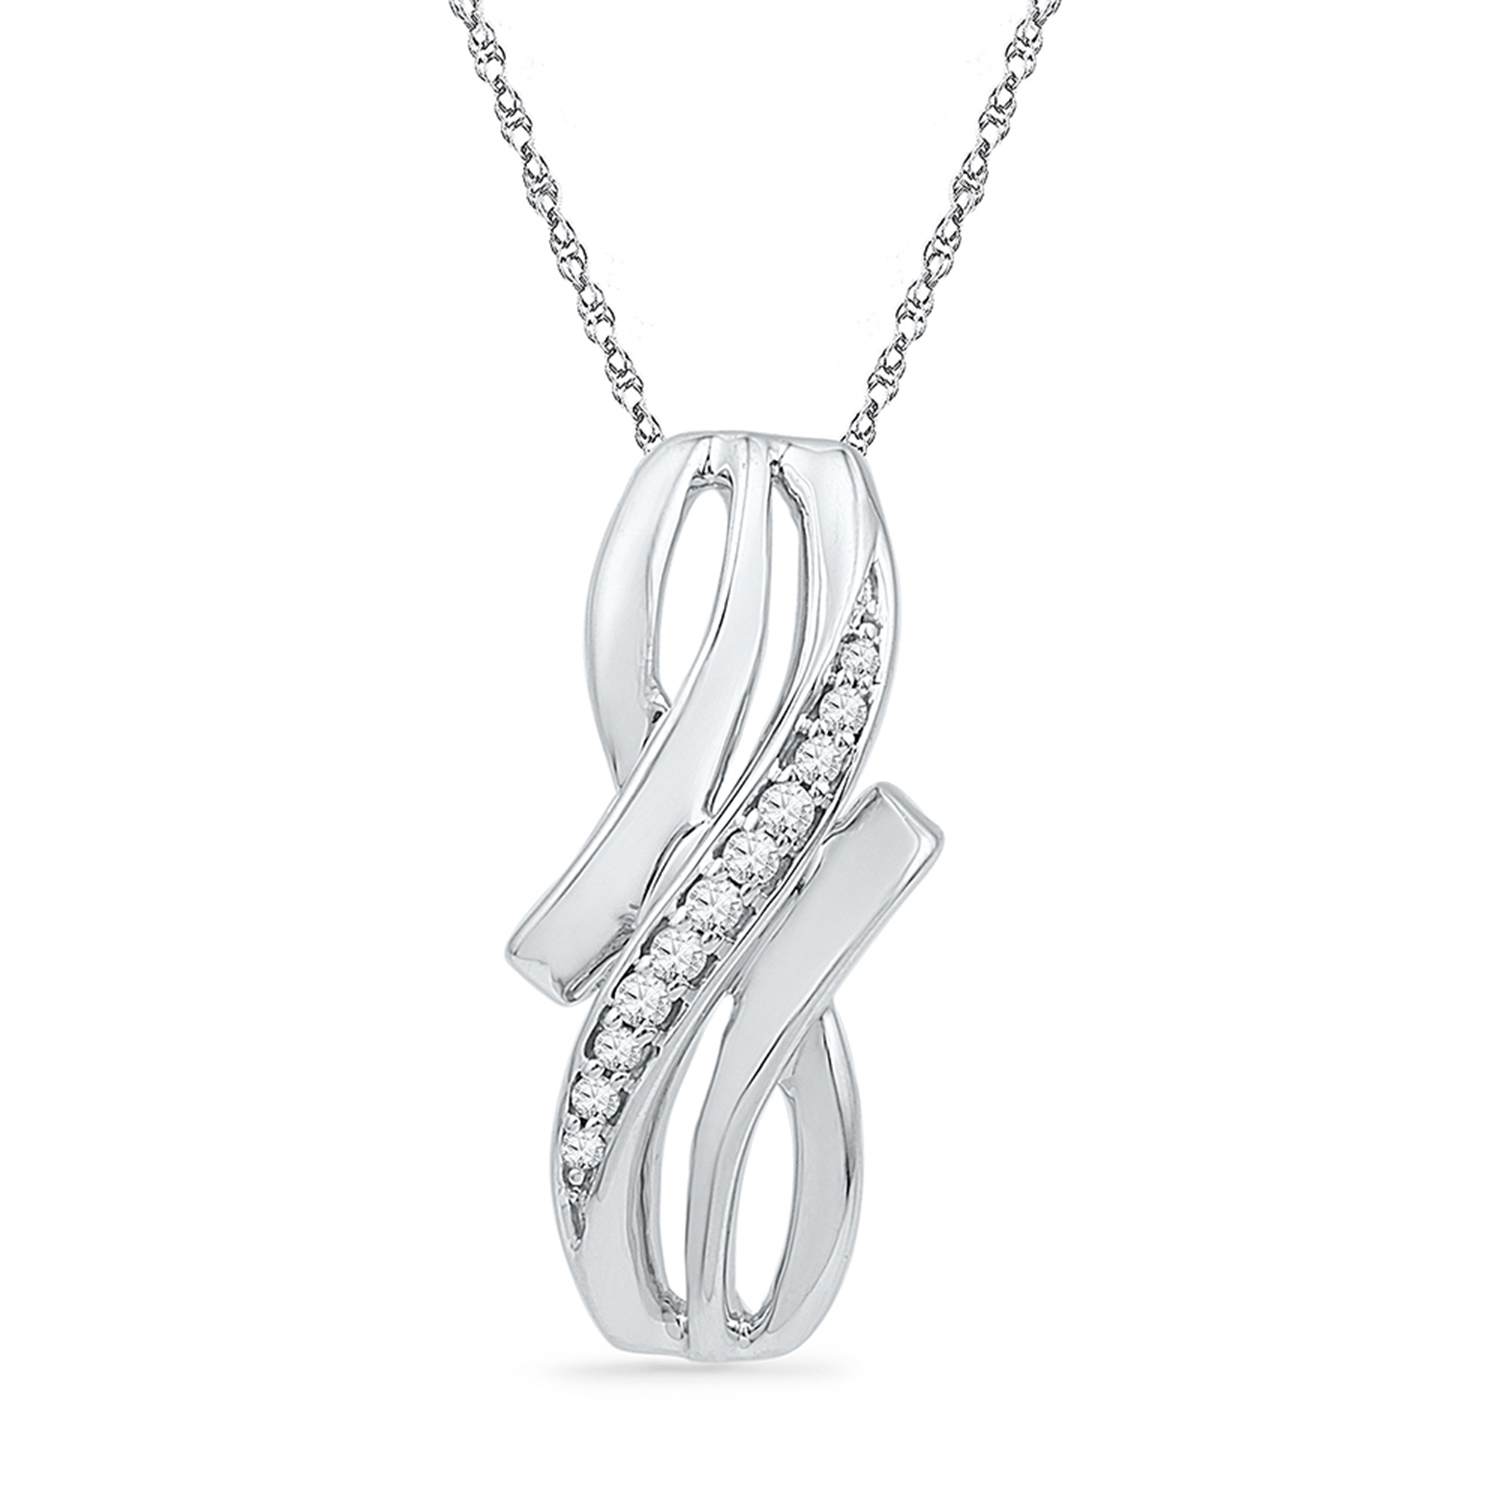 Diamond pendant 0.03 Carats T.W. in sterling silver - chain included - length of pendant: 2.1cm